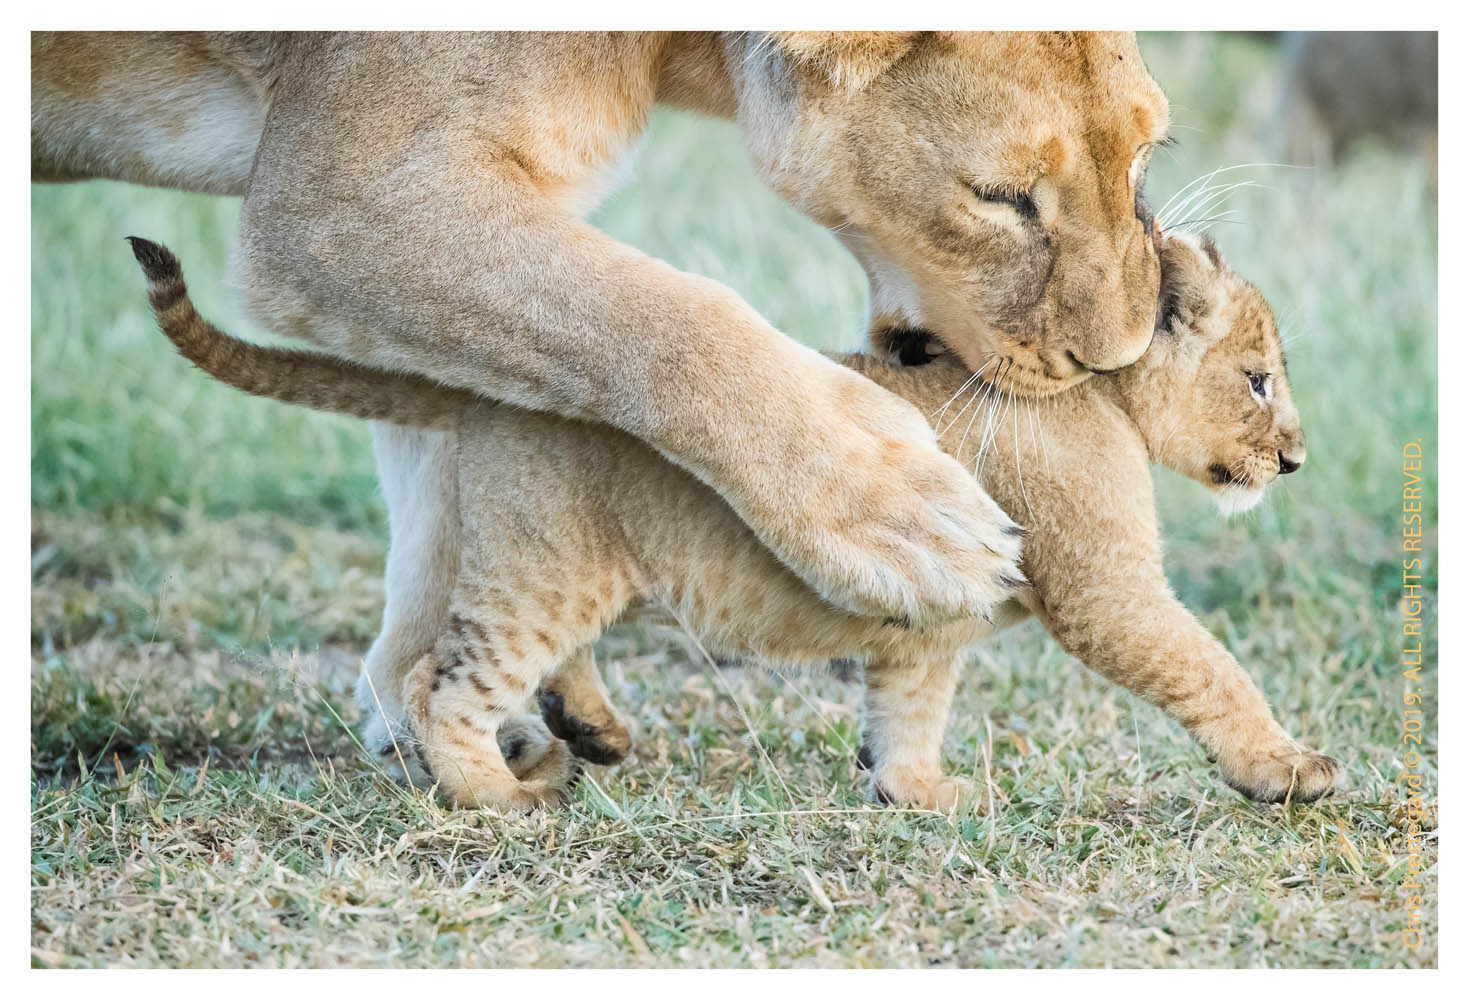 Lion cubs at Ndutu, Tanzania in Feb. 2019